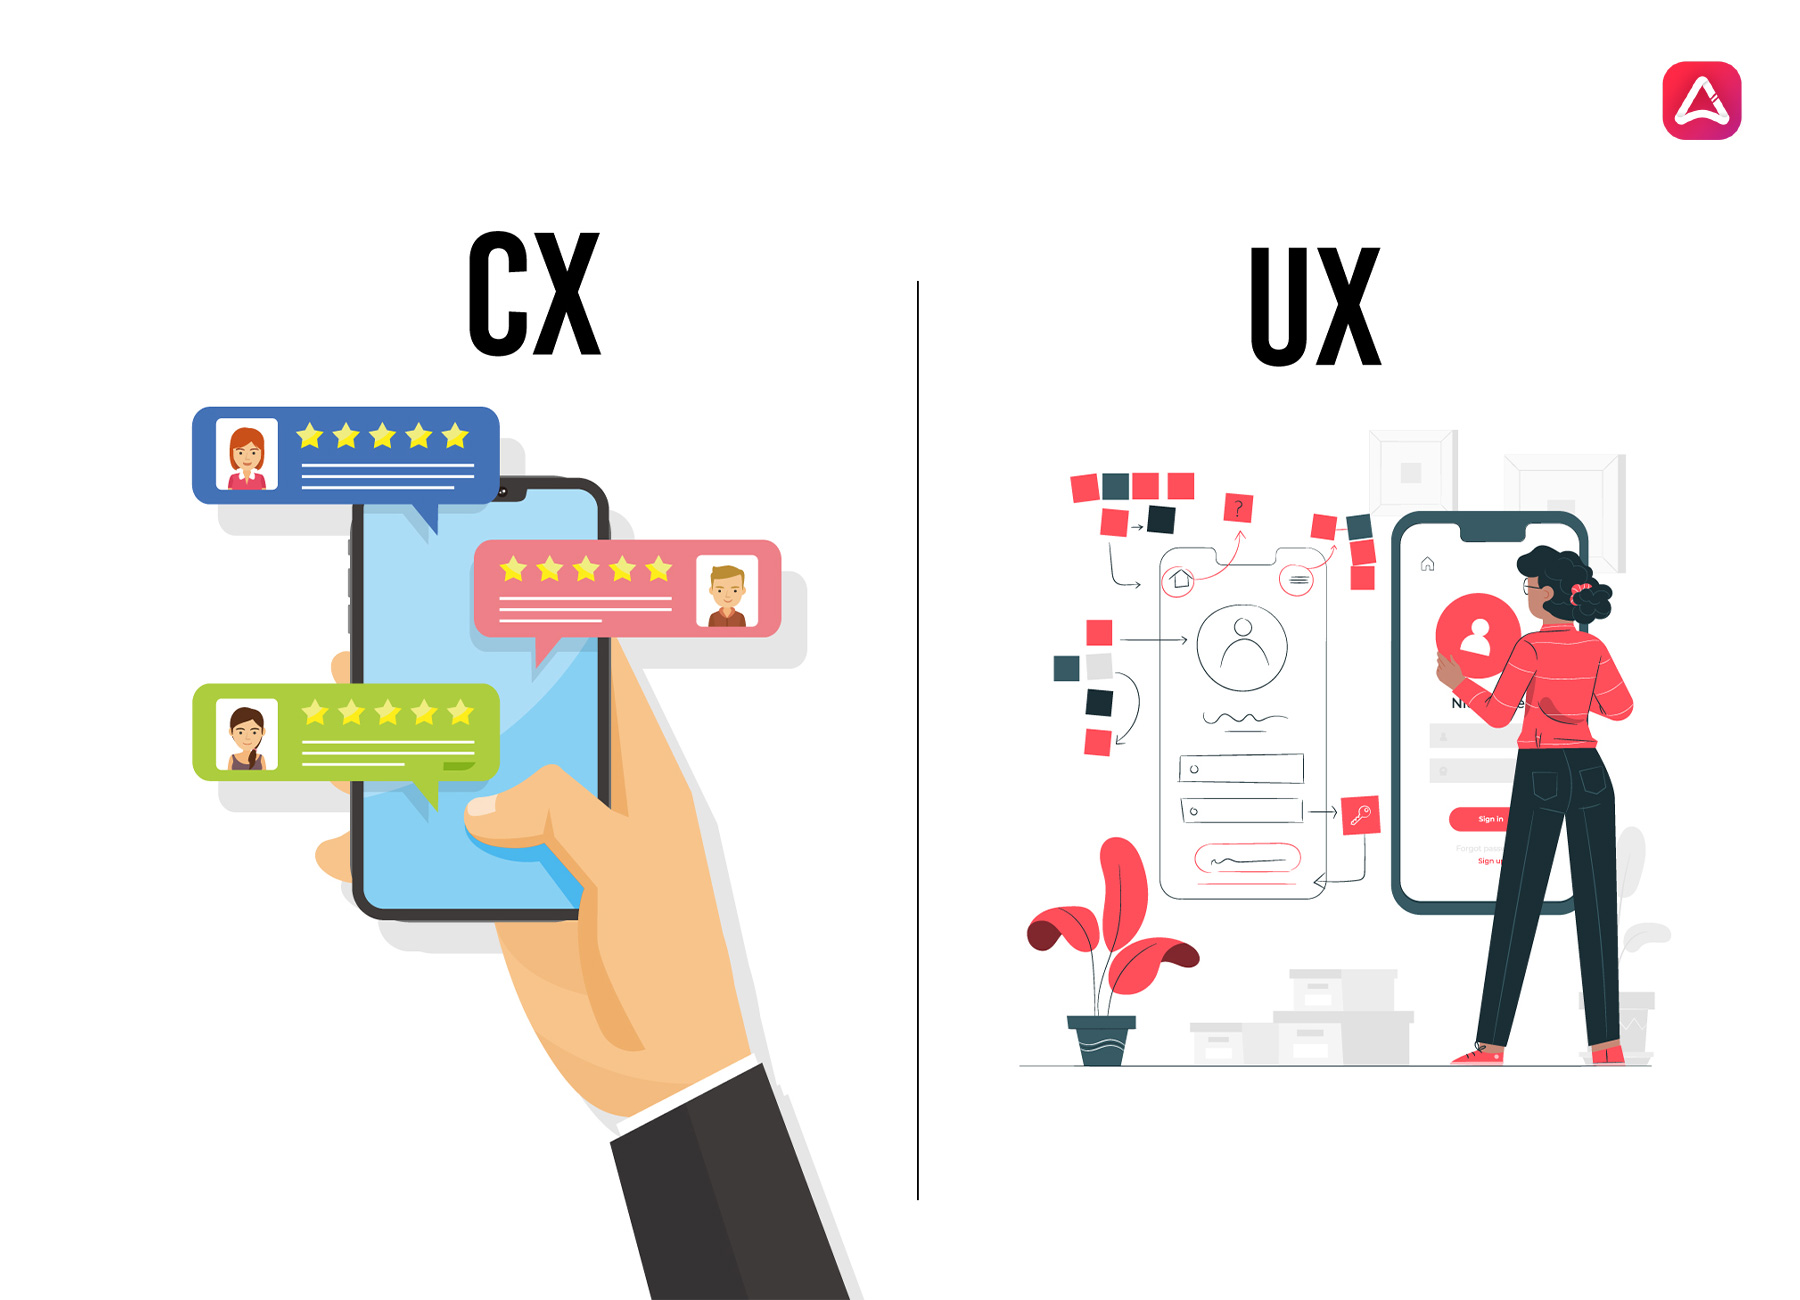 What is the difference between CX and UX?